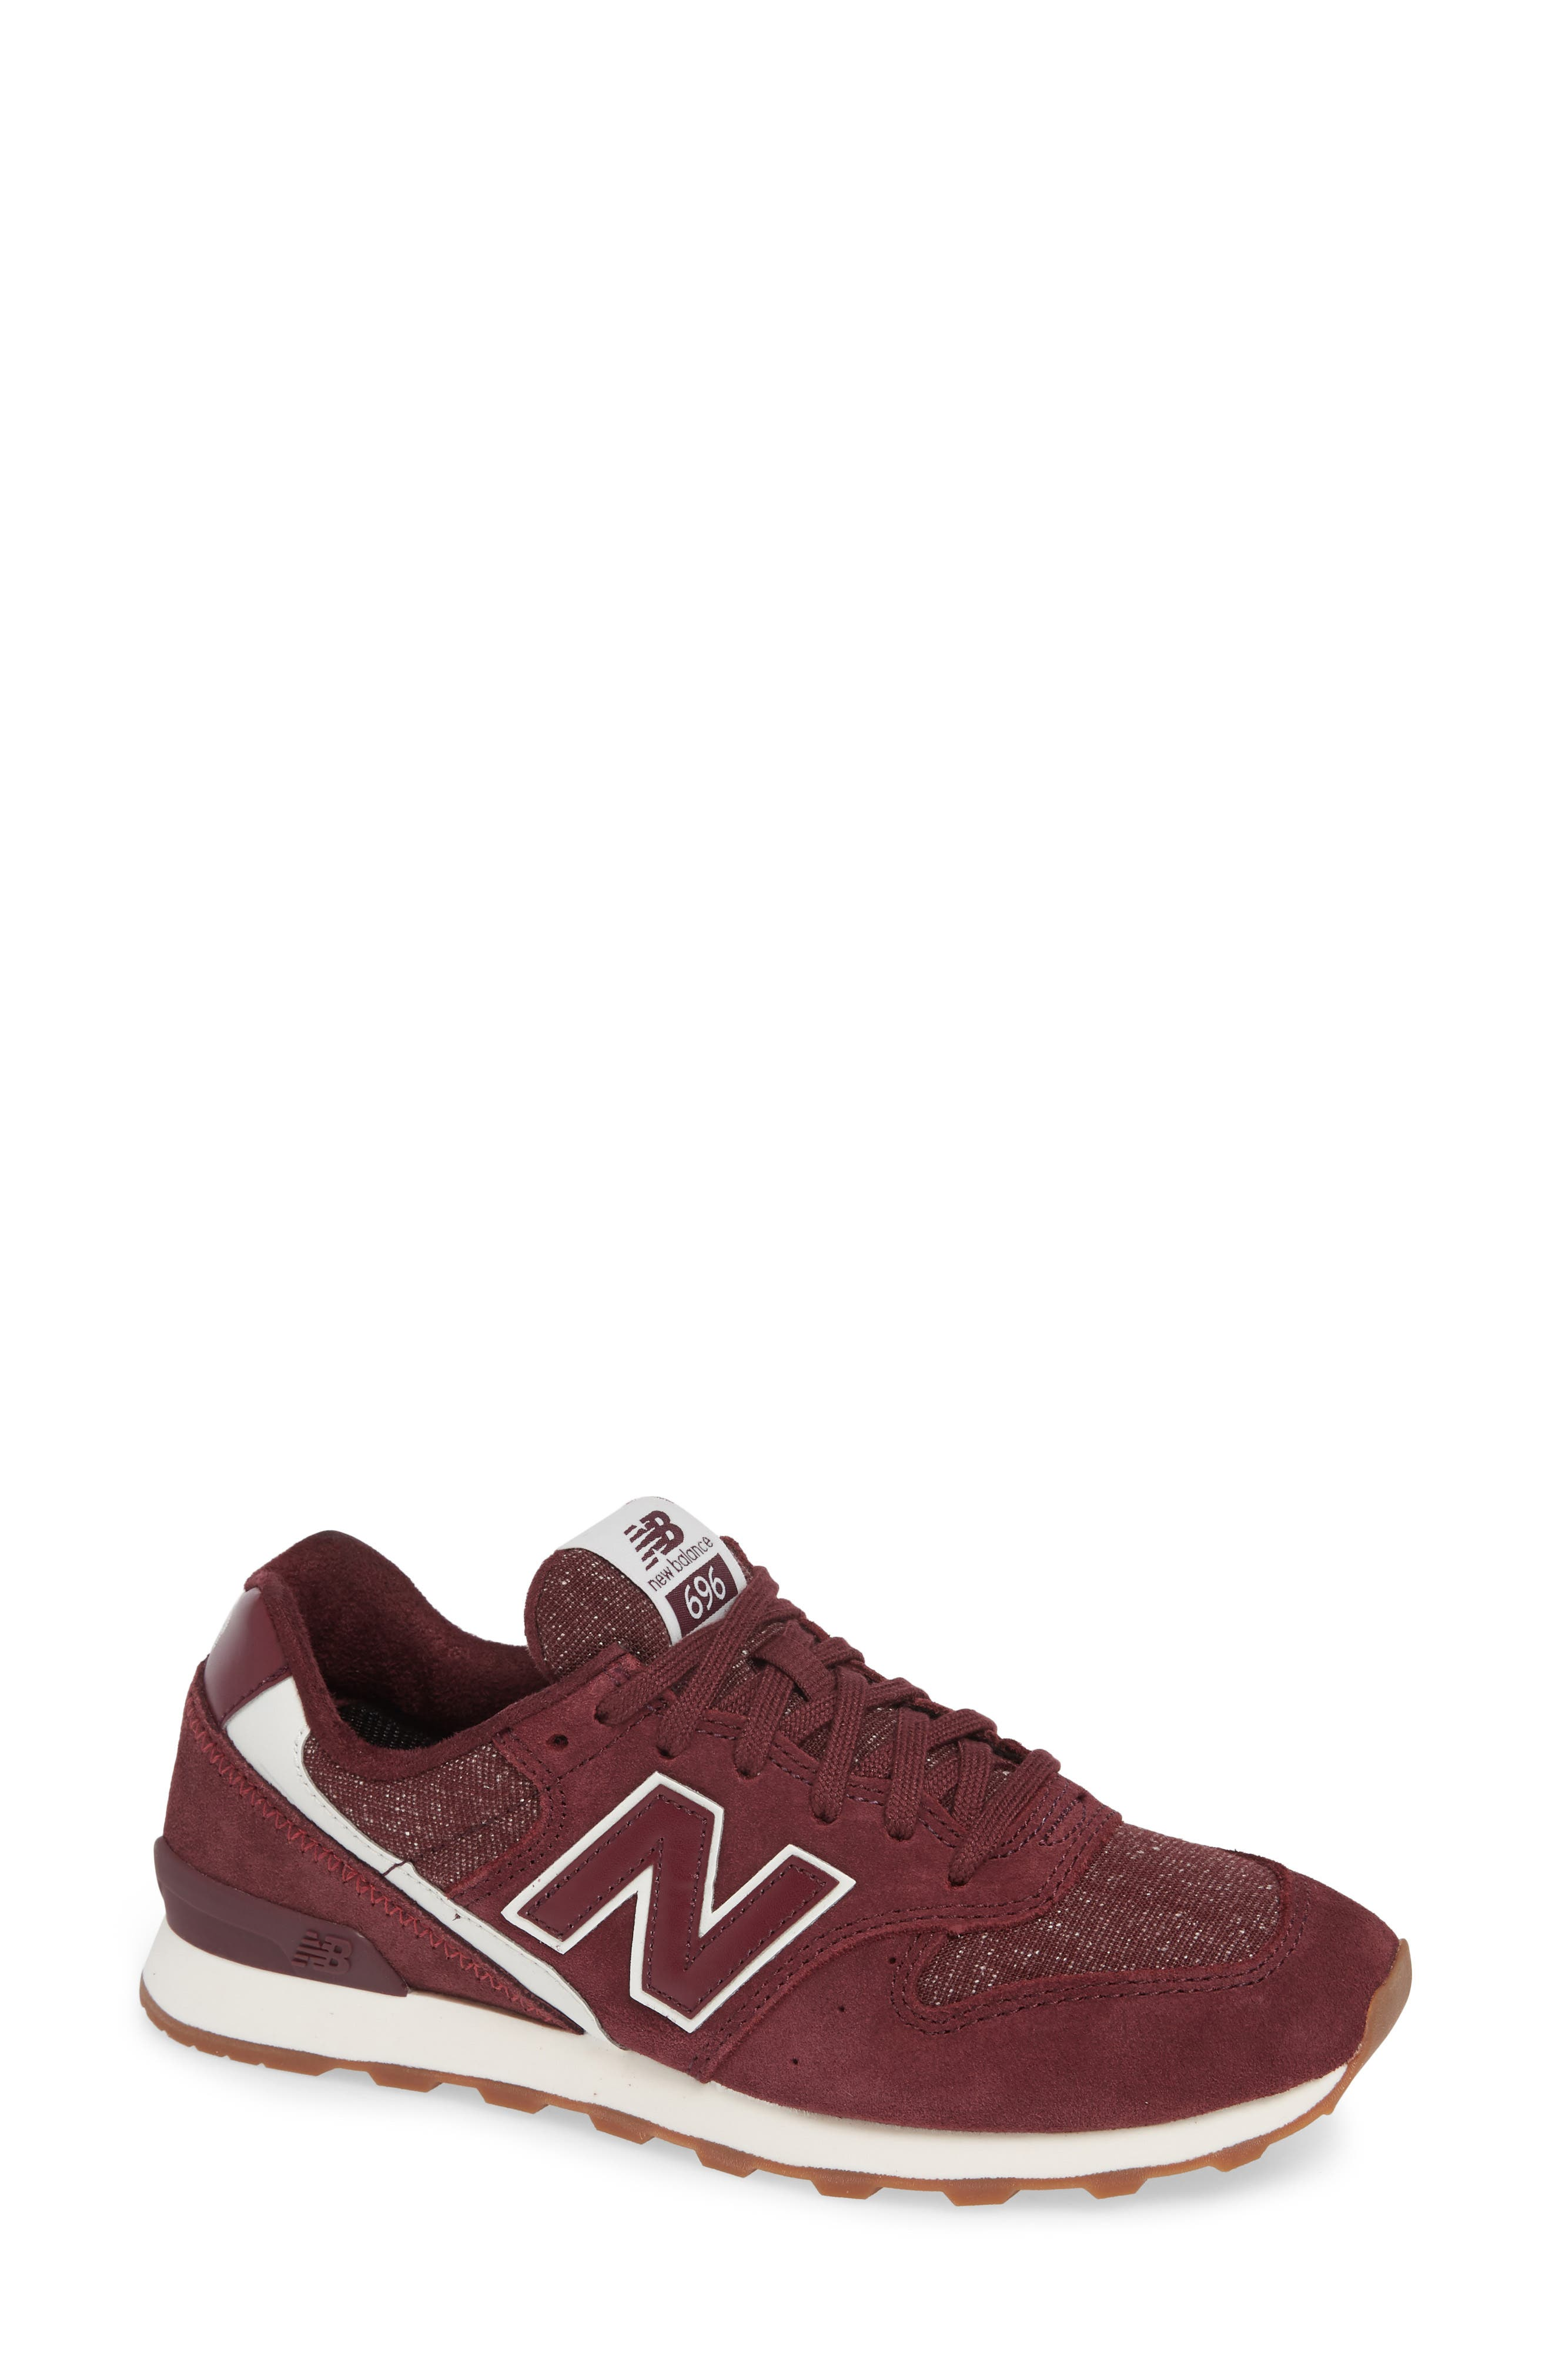 NEW BALANCE 696 Sneaker, Main, color, BURGUNDY